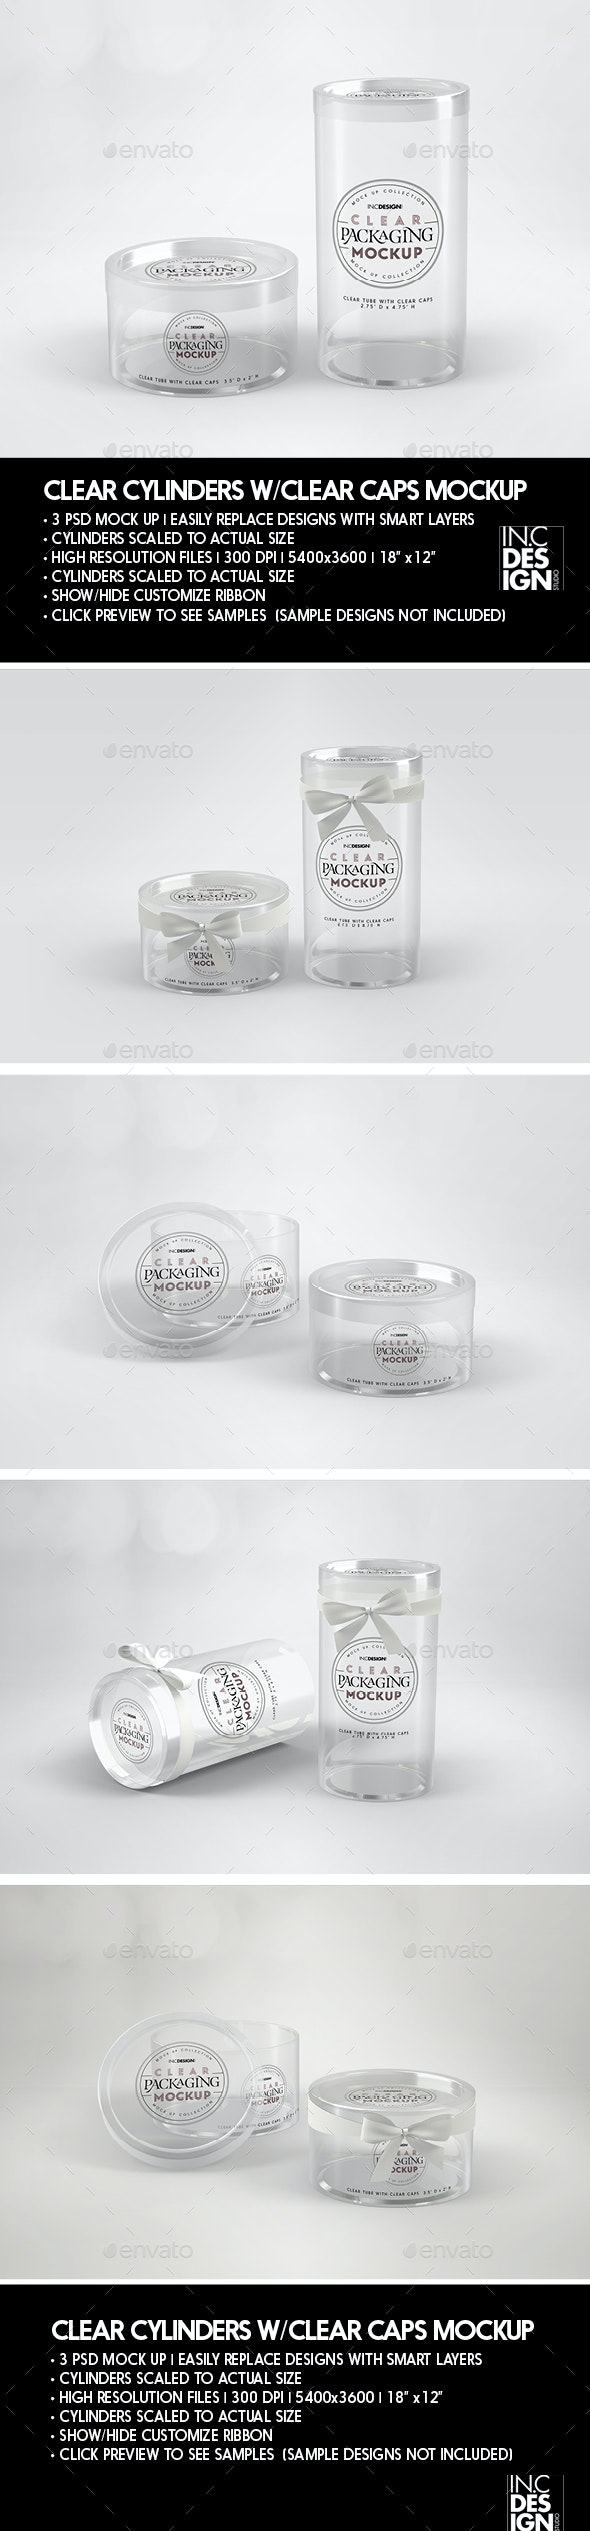 Clear Cylinders with Clear Caps Packaging Mockup - Packaging Product Mock-Ups